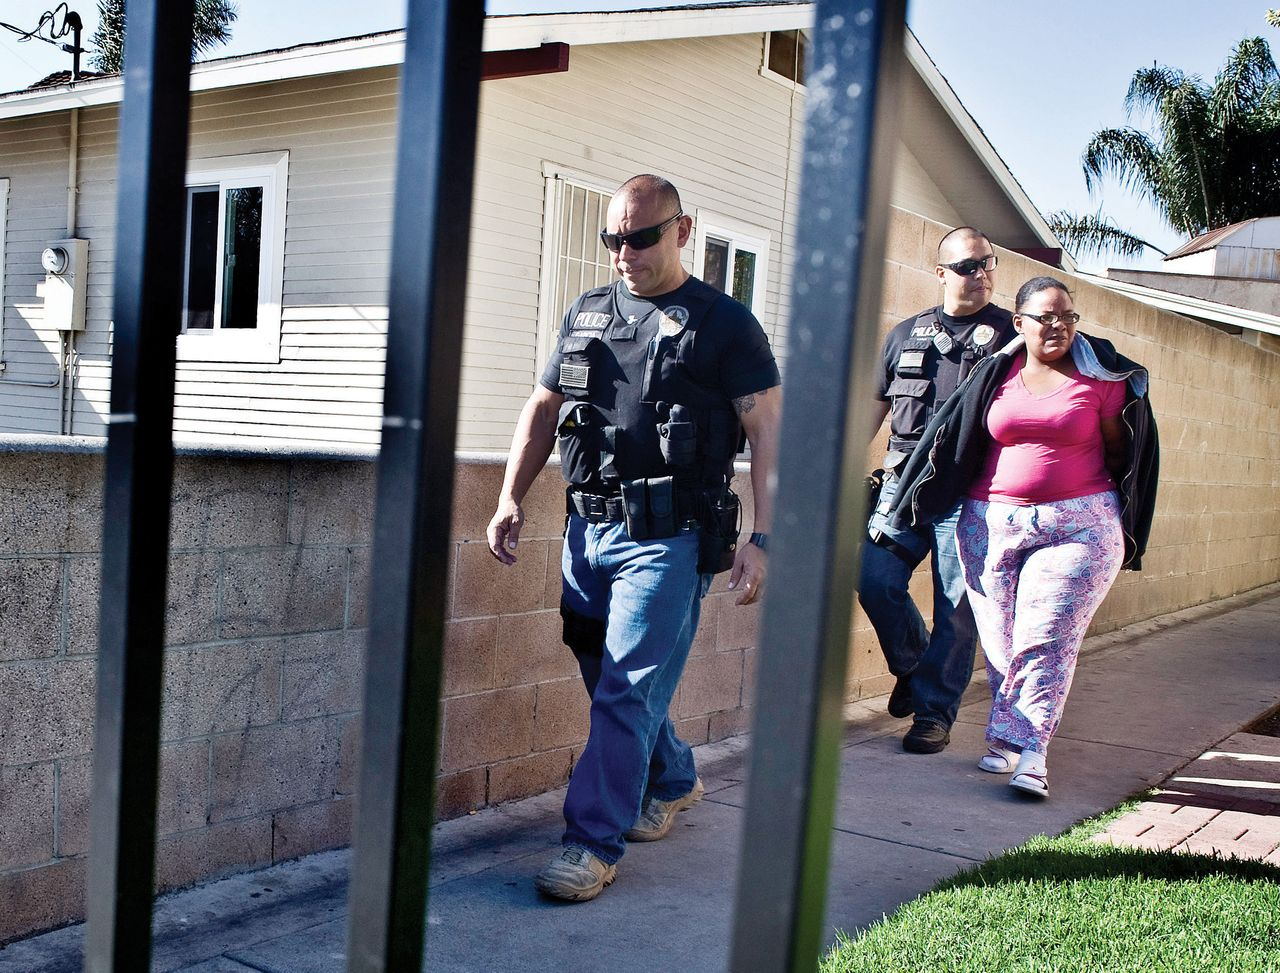 TOP PHOTO: Cheree Peoples outside of the apartment where she lives when her 17-year-old daughter, Shayla, is at Children's Hospital of Orange County. Peoples was arrested six years ago for Shayla's repeated truancy despite ample evidence given to the Orange County school showing Shayla suffers from sickle cell anemia, which leaves her in constant pain and requires frequent hospitalization. (Credit: Tara Pixley for HuffPost) <br>ABOVE: Buena Park police officers Luis Garcia (left) and James Woo escort Peoples, 33, to their patrol car on April 18, 2013. She was handcuffed and under arrest.